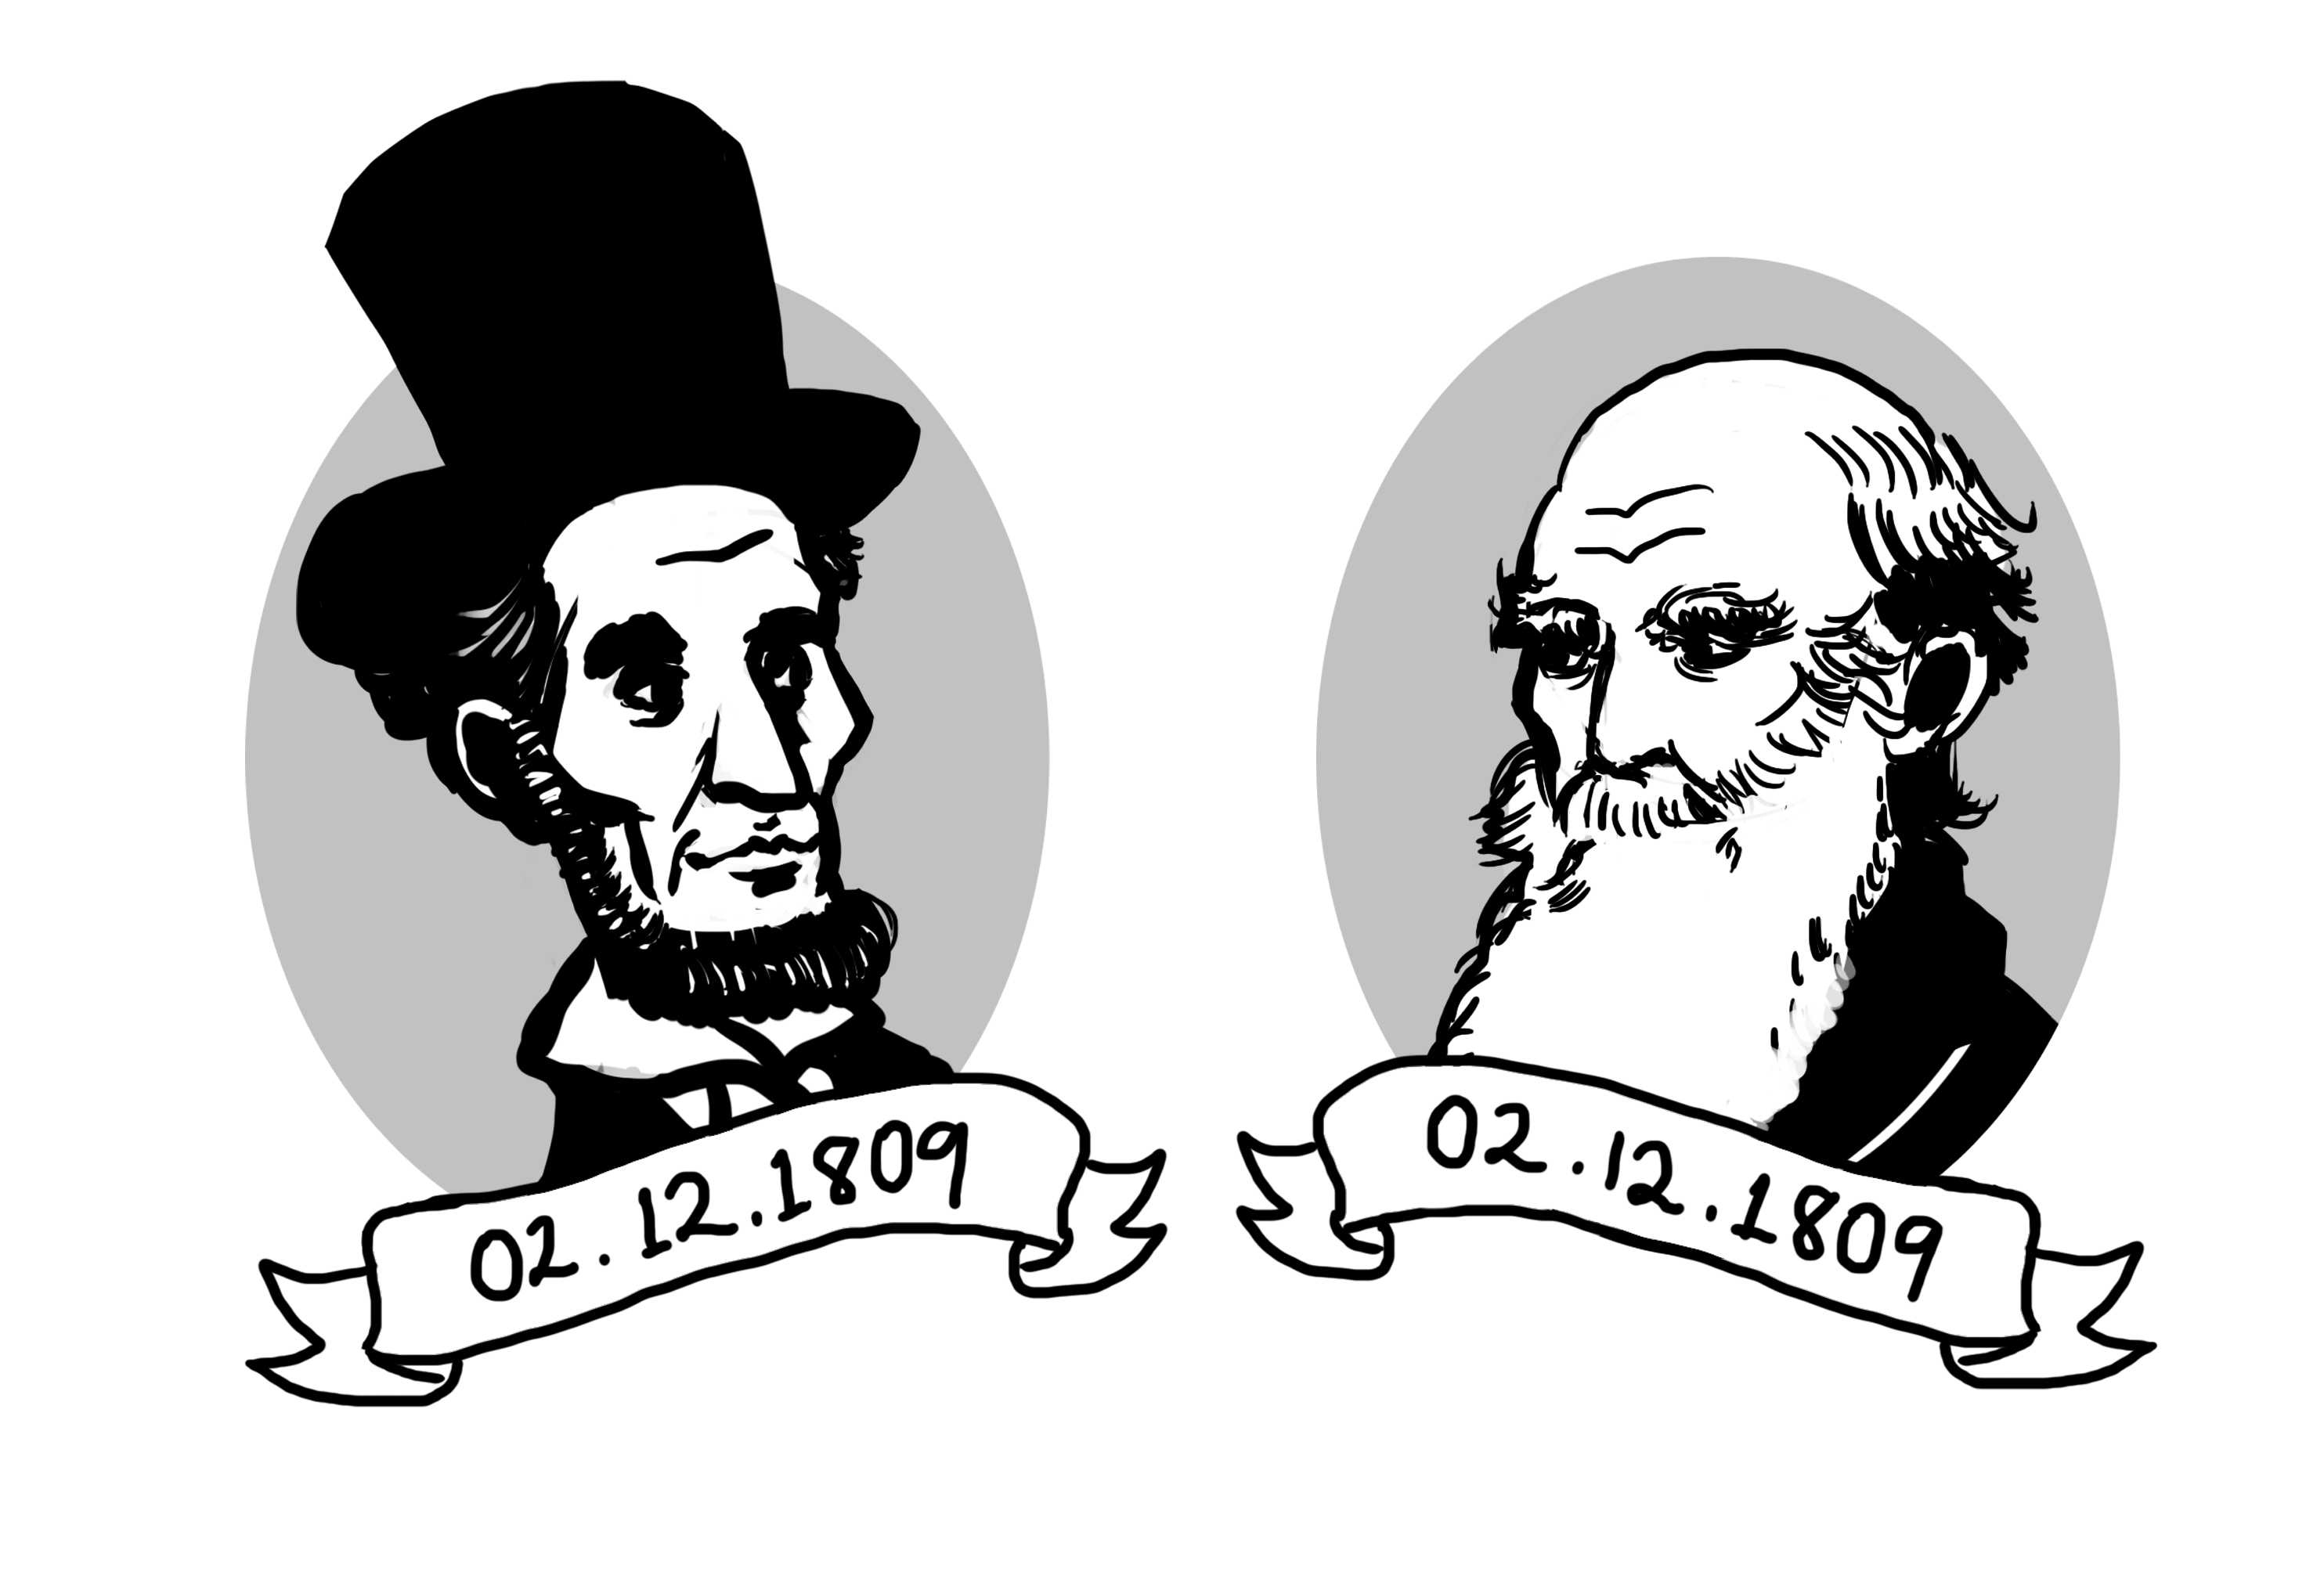 Lincoln and Darwin share more than just their love for mankind